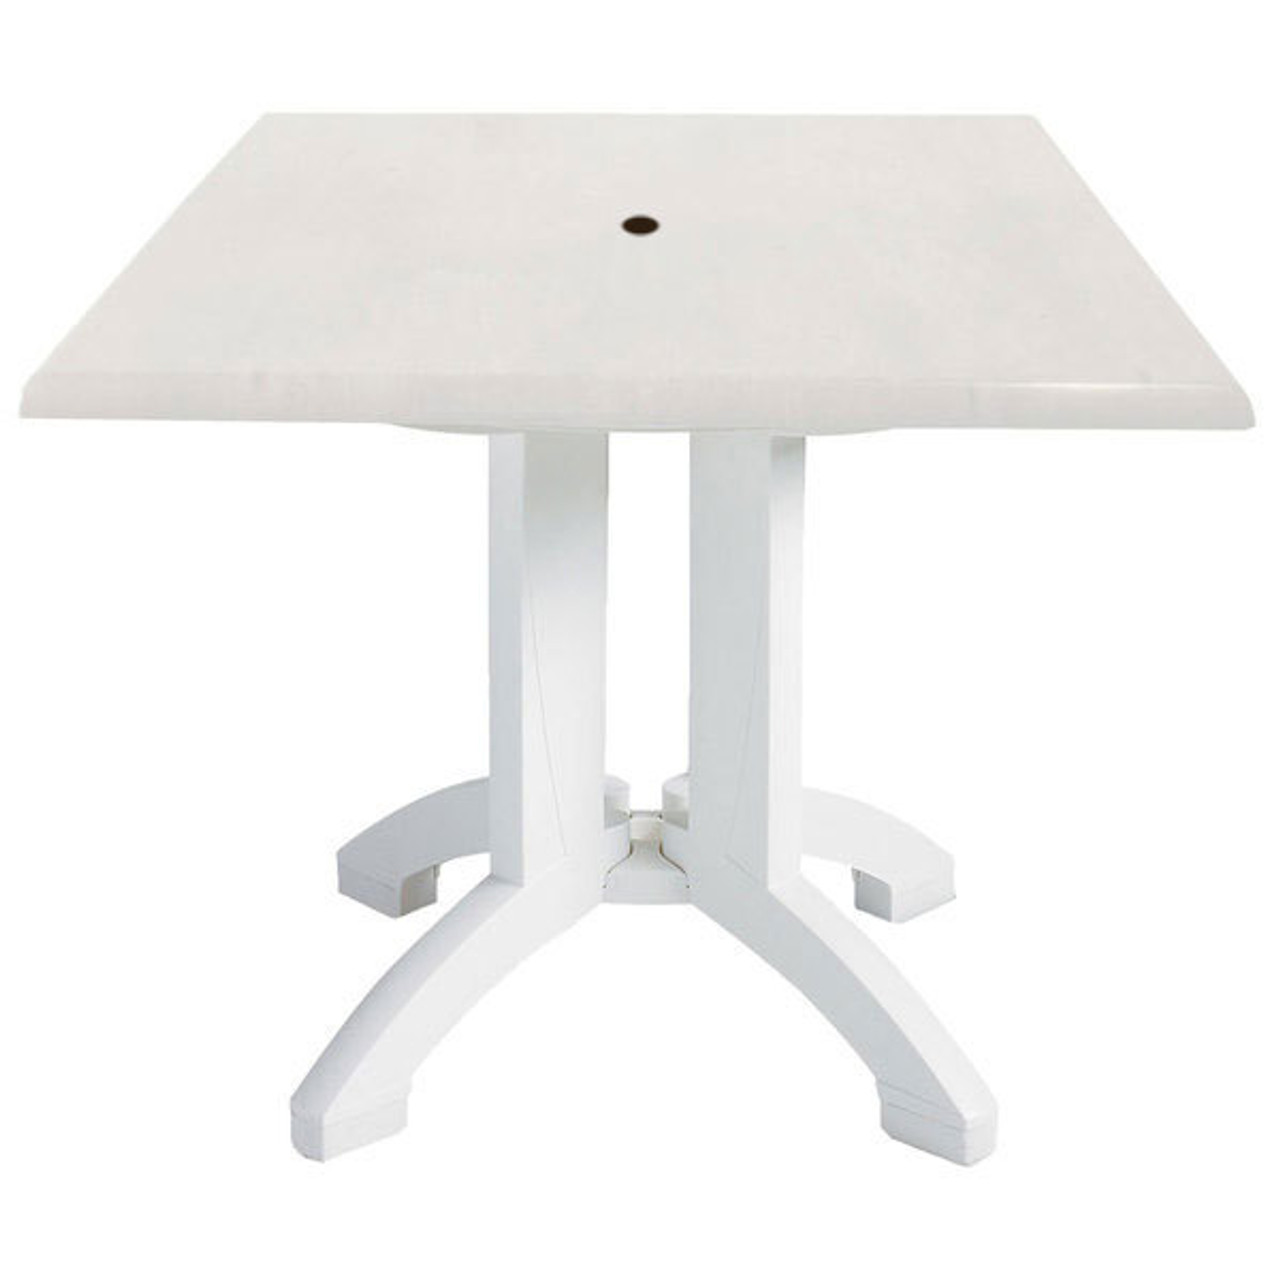 Grosfillex Atlanta Square Dining Table Outdoor Dining